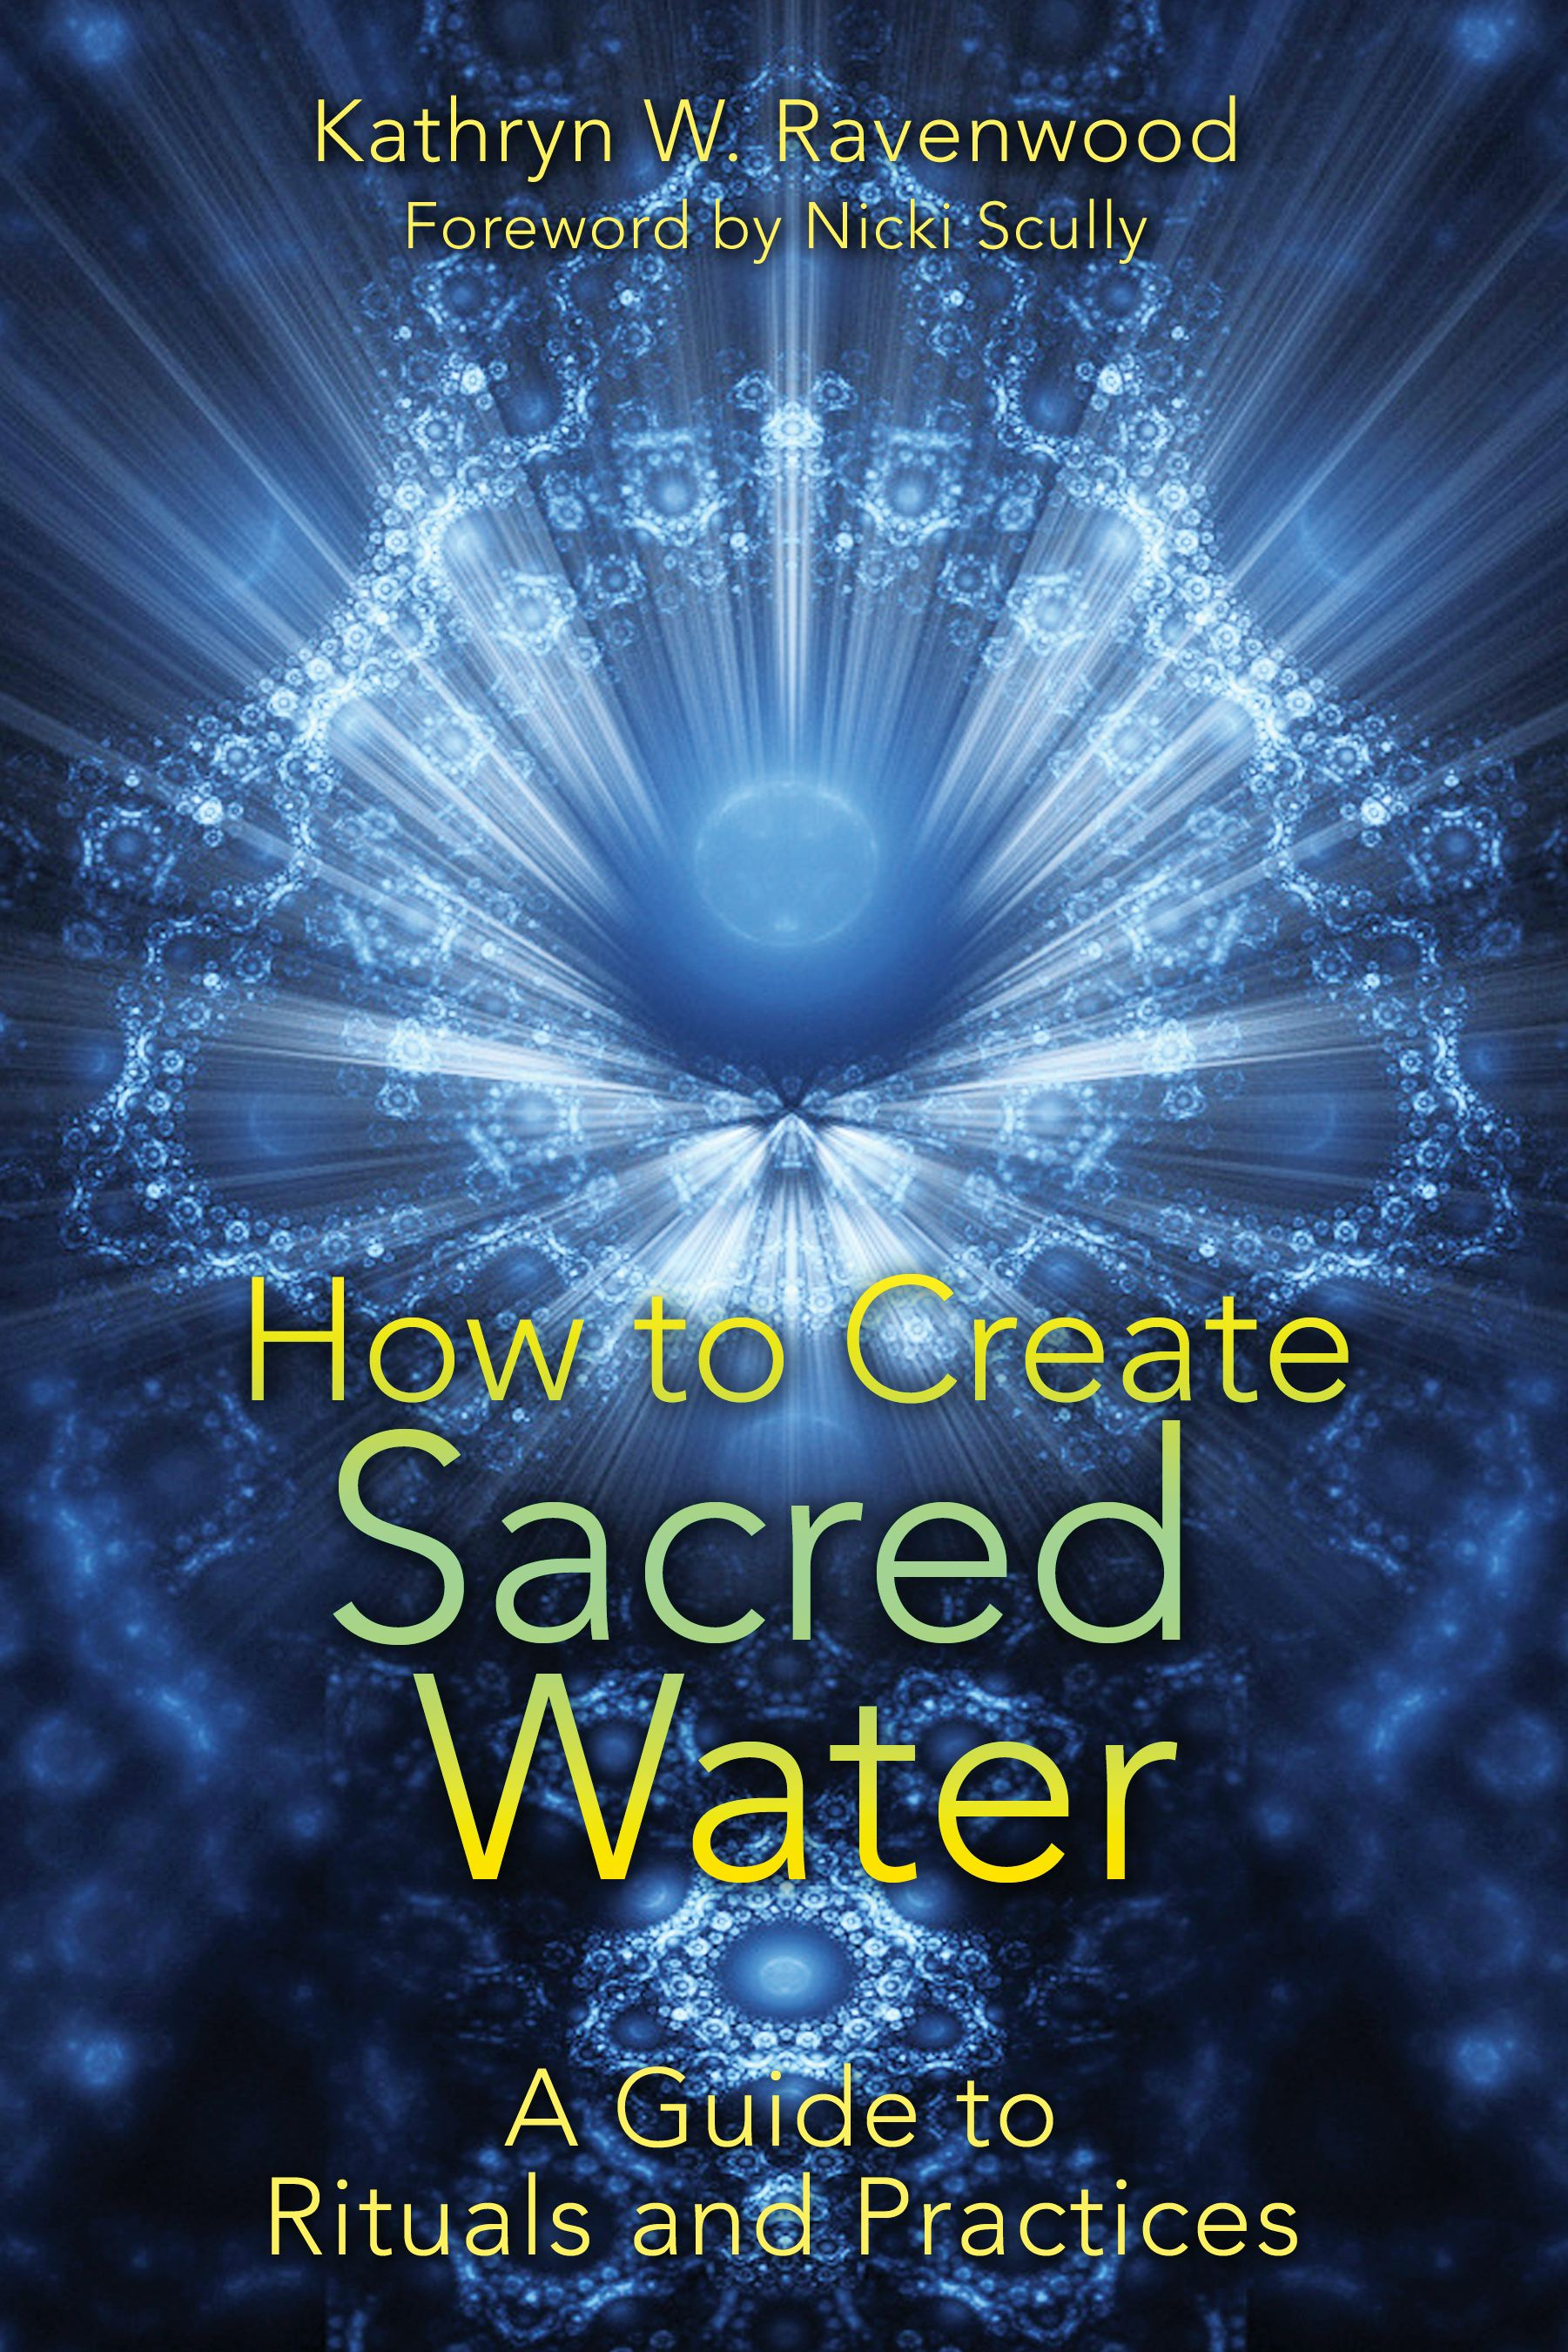 How-to-create-sacred-water-9781591431411_hr